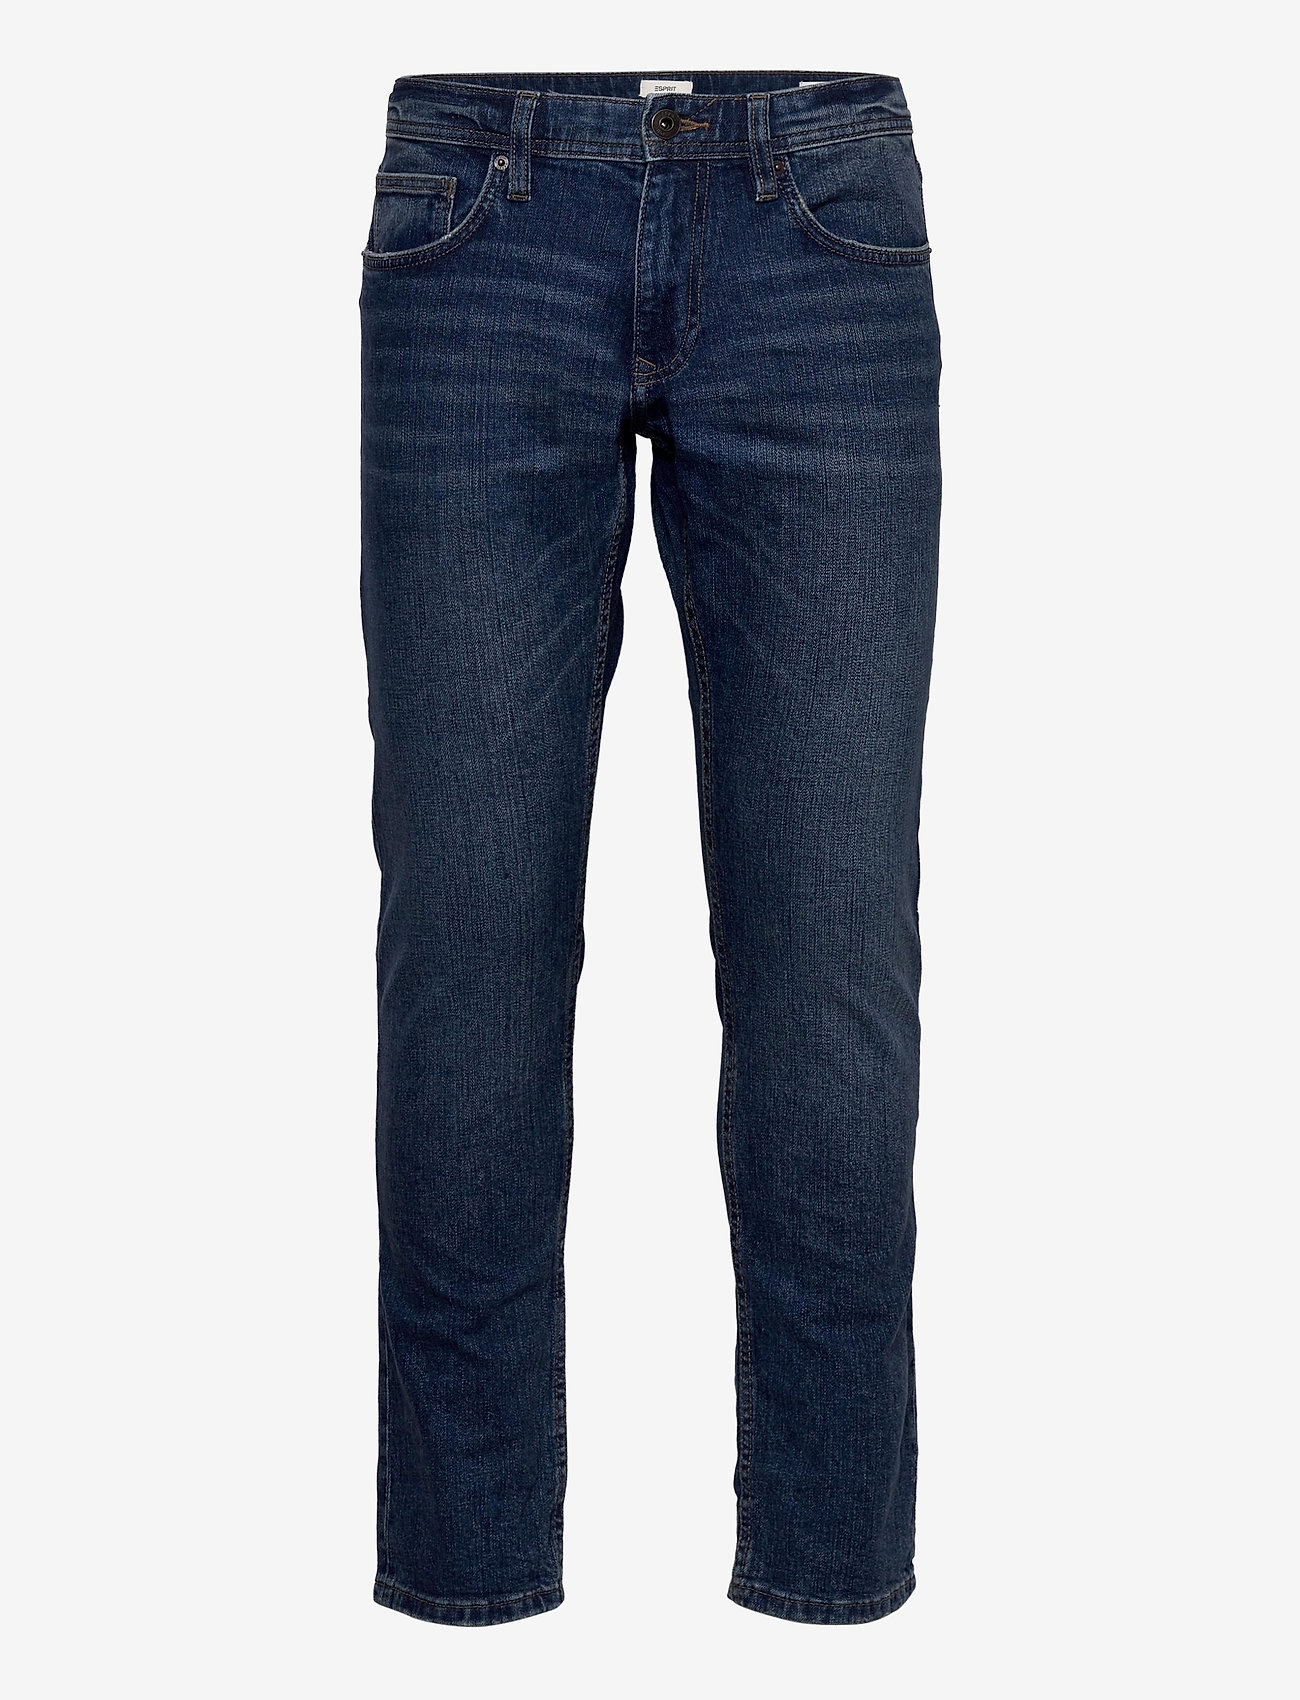 Esprit Casual - Pants denim - regular jeans - blue medium wash - 0